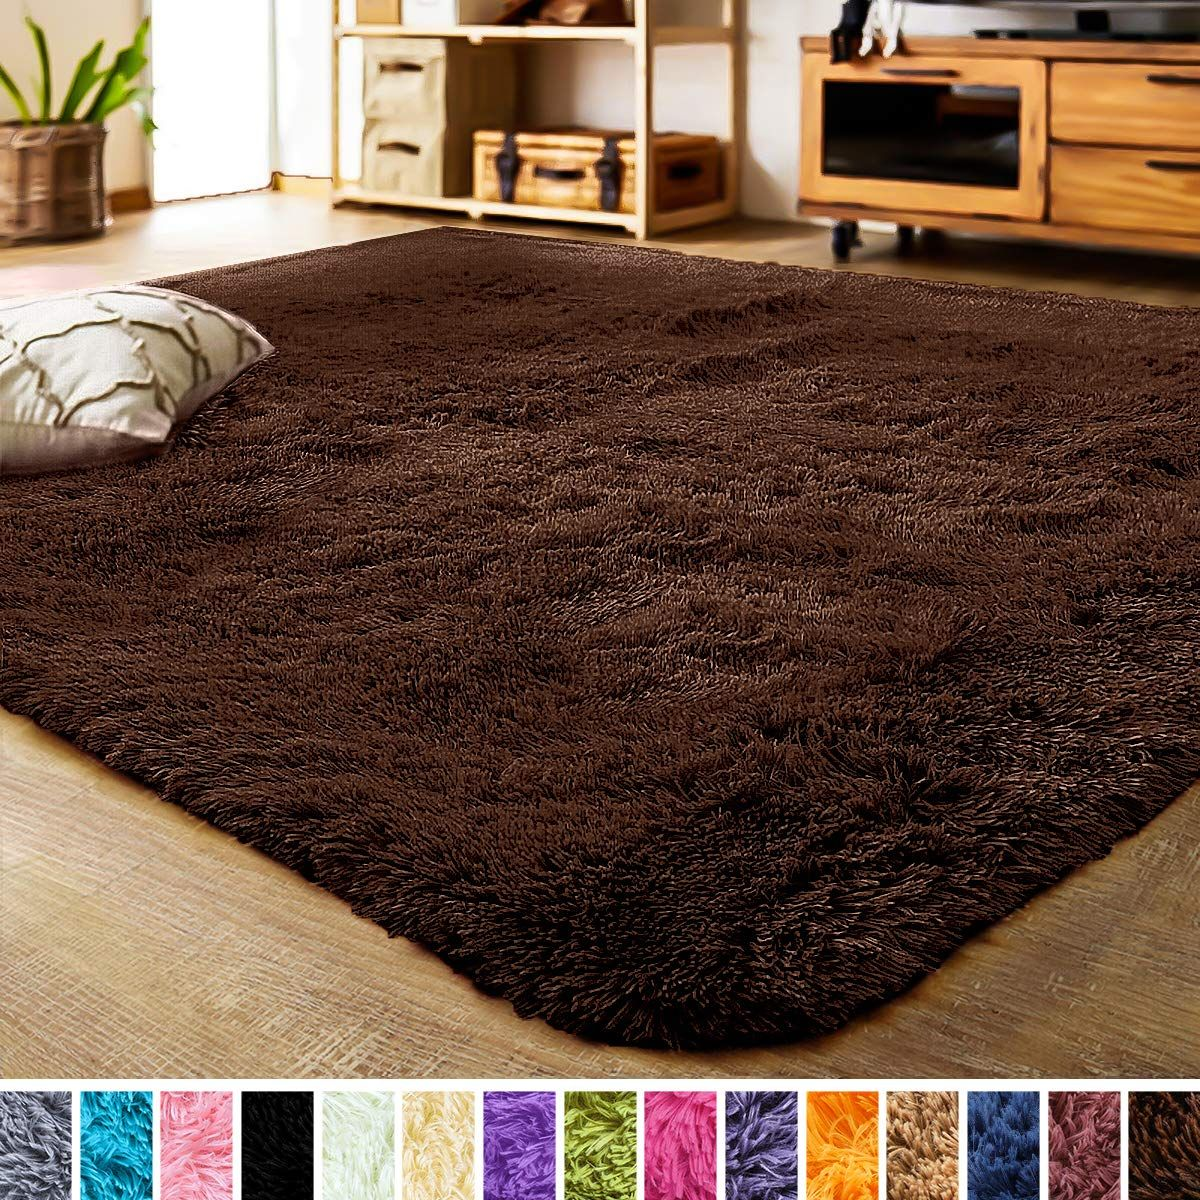 Lochas Luxury Velvet Shag Area Rug Modern Indoor Fluffy Rugs Extra Soft And Comfy Carpet Cute Color Furry Bedr In 2020 Fluffy Rug Living Room Carpet Modern Area Rugs